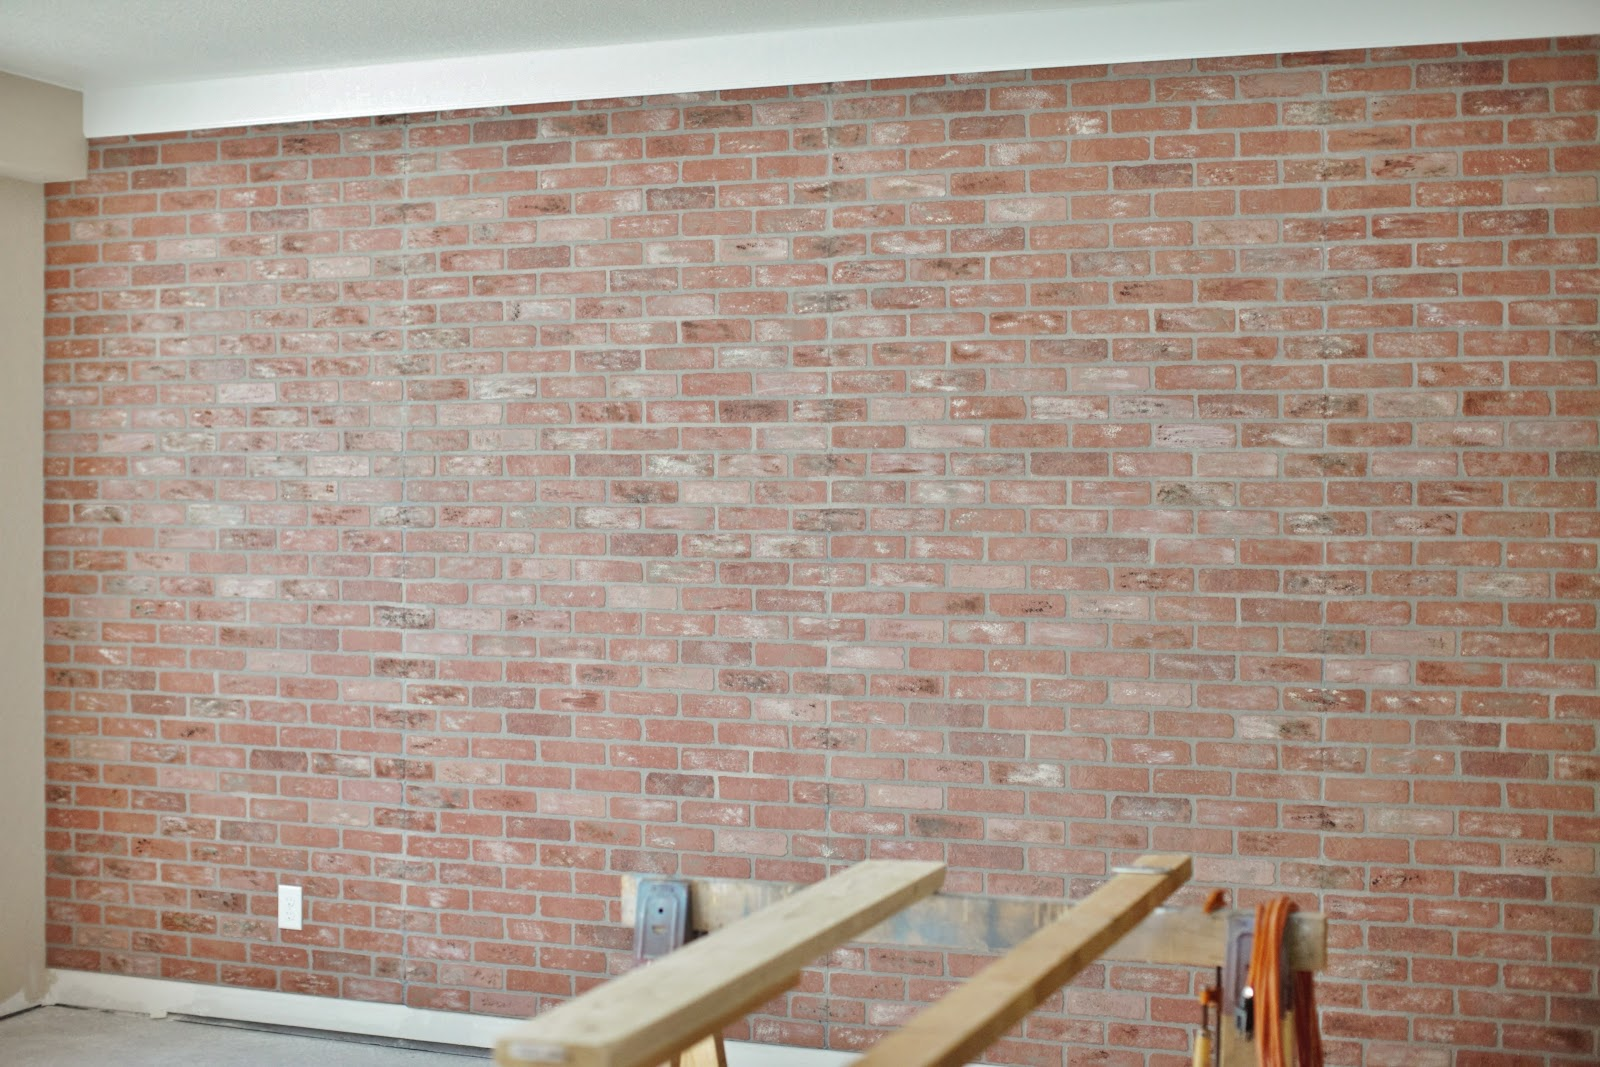 His hers and ours diy faux brick wall - Artificial brick wall panels ...